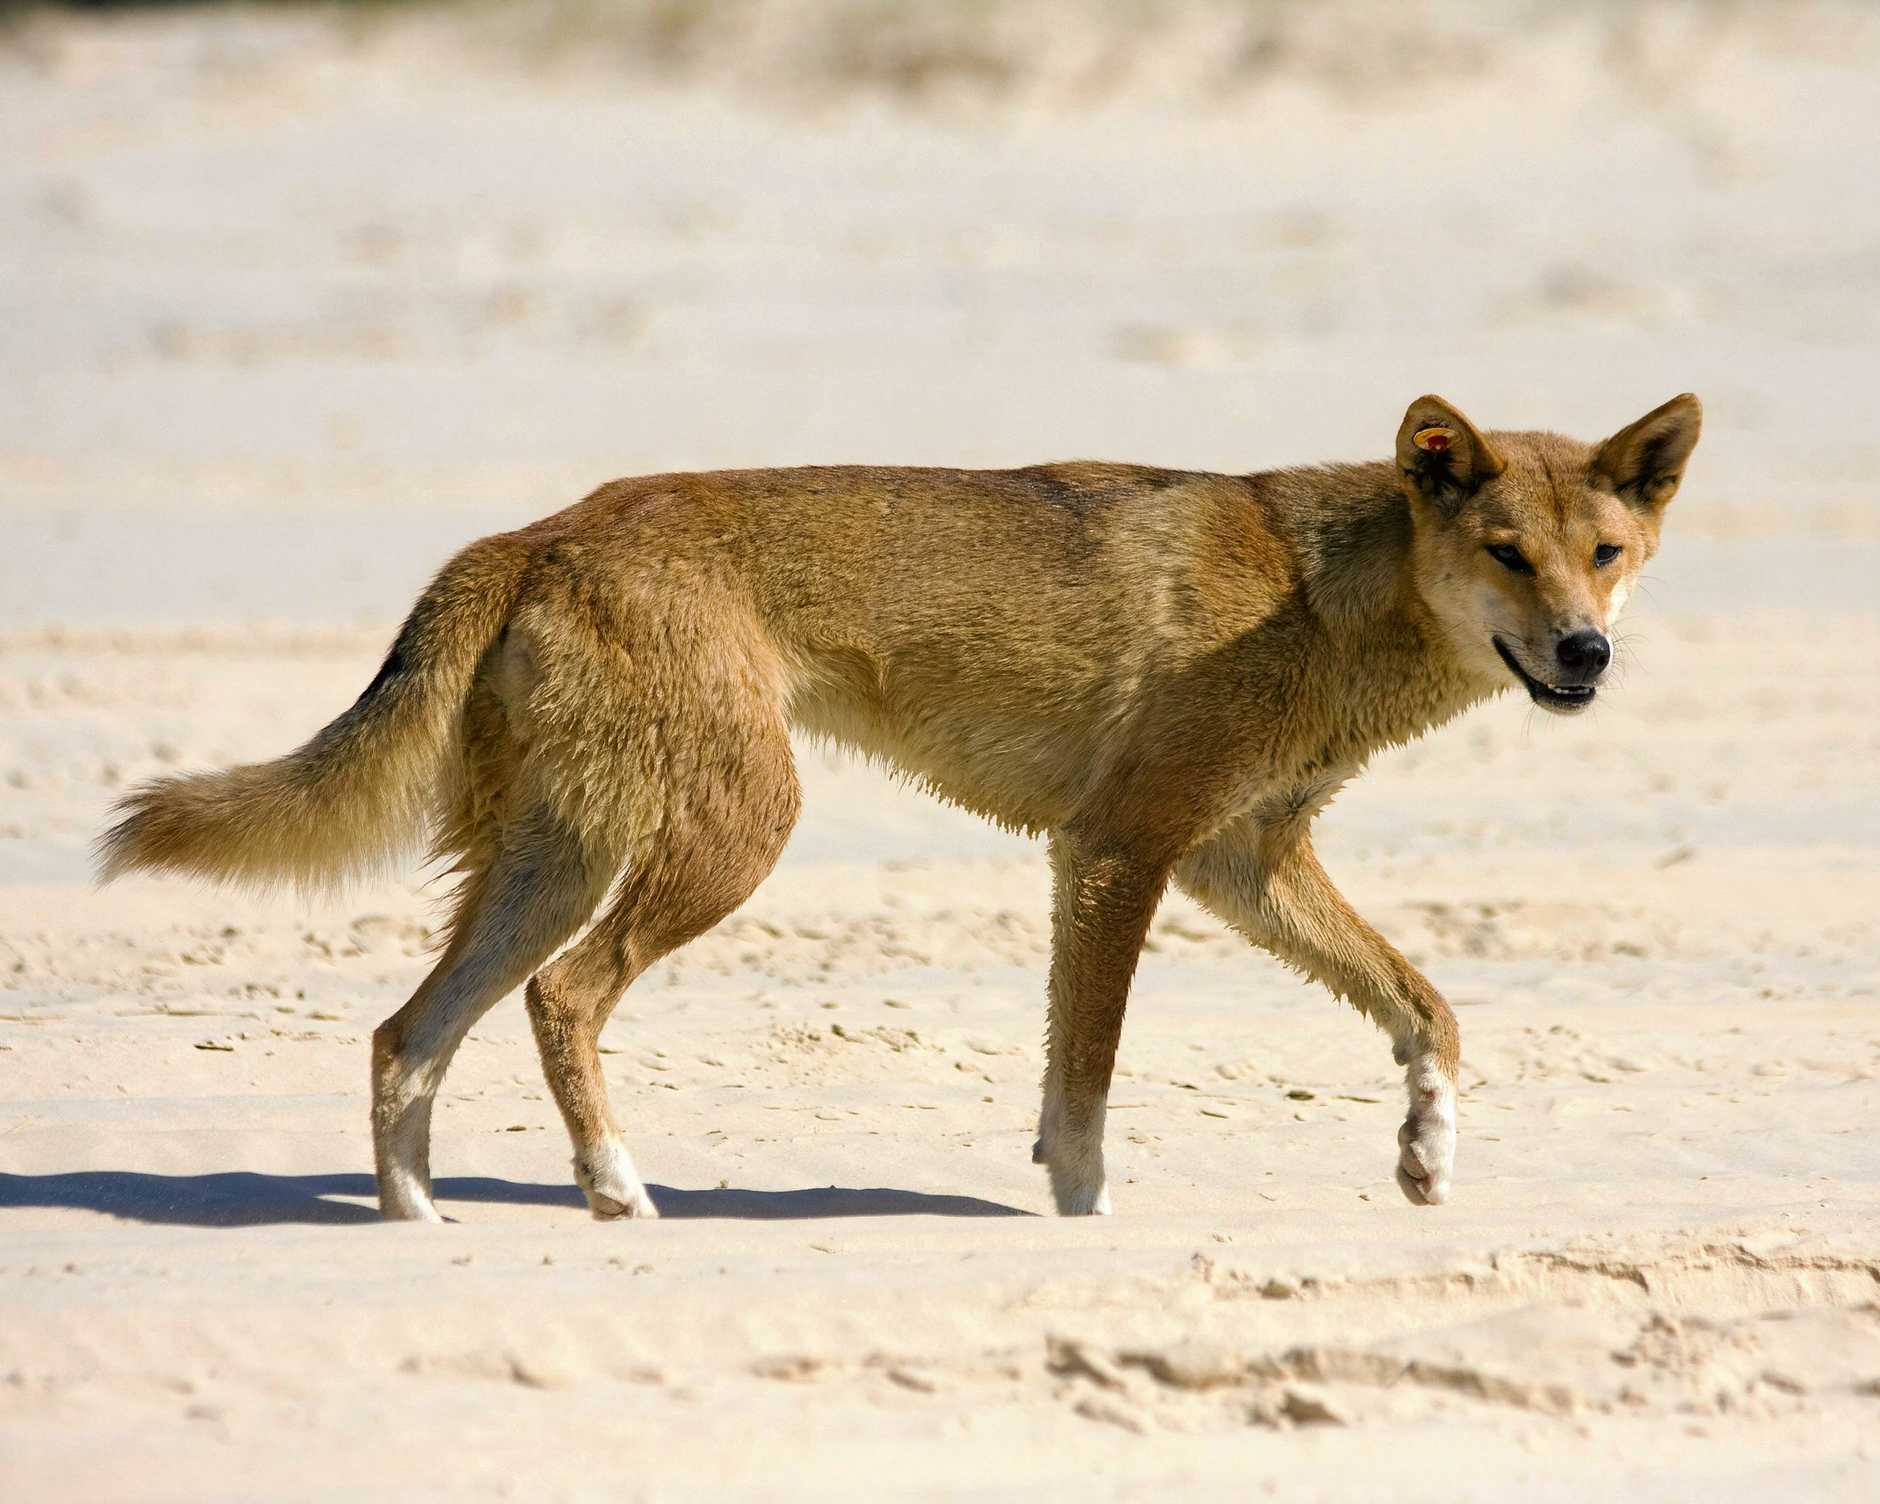 A Fraser Island dingo or native dog as they are widely known.